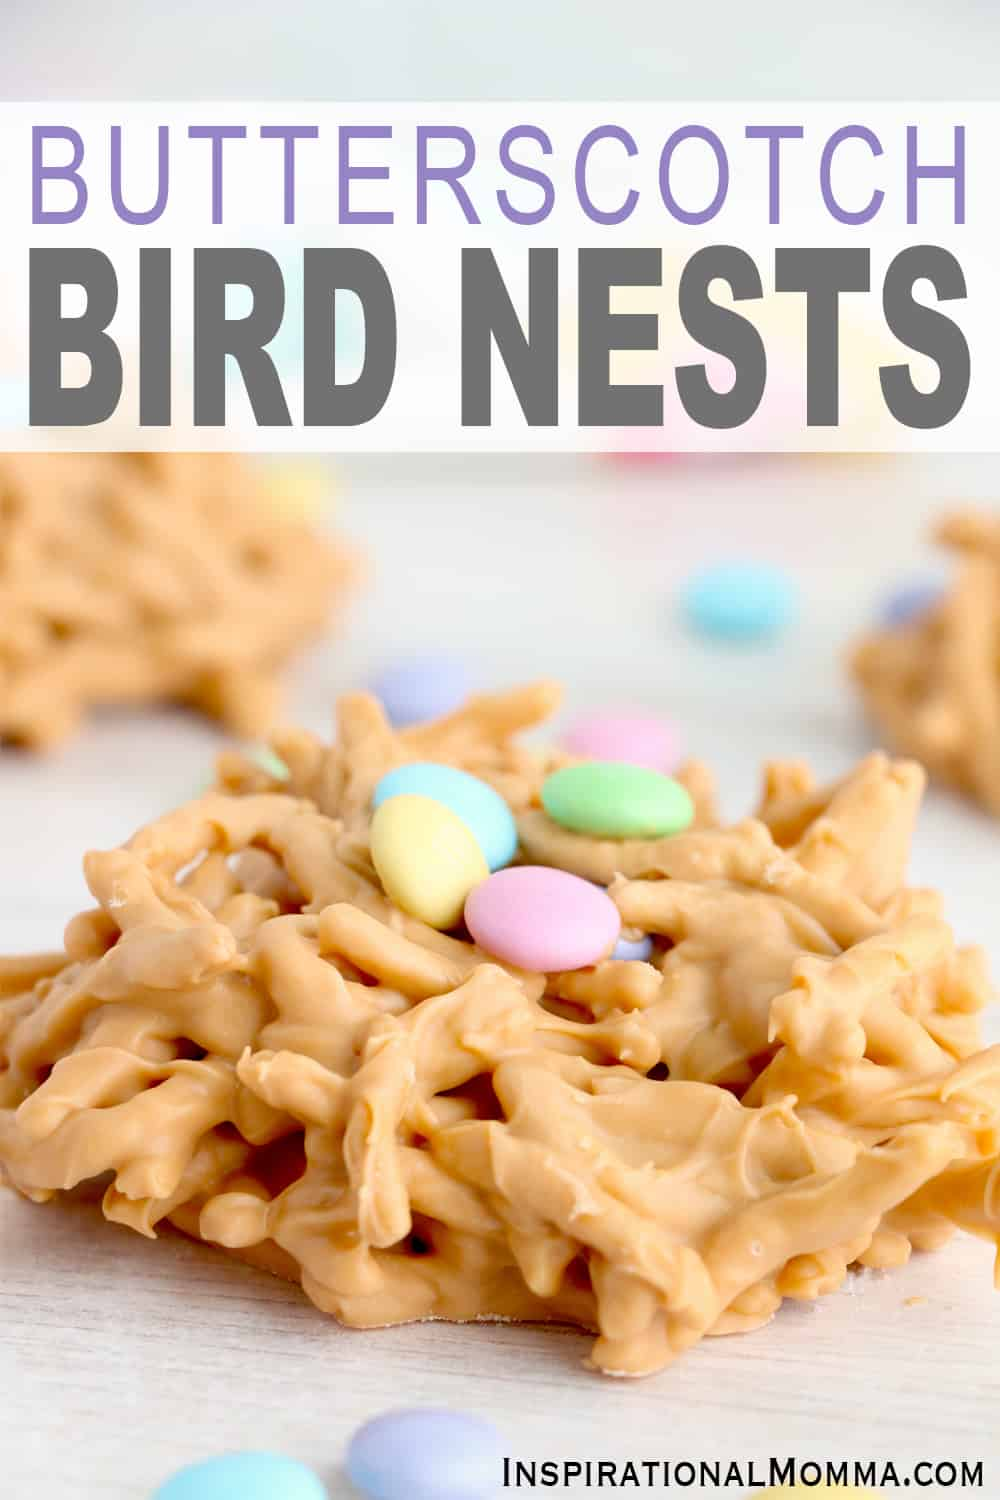 Butterscotch Bird Nests are a cute, sweet spring treat! Crunchy chow mein noodles covered in delicious butterscotch, topped off with M&Ms. #inspirationalmomma #butterscotchbirdnests #birdnests #springdesserts #butterscotch #butterscotchdesserts #easydesserts